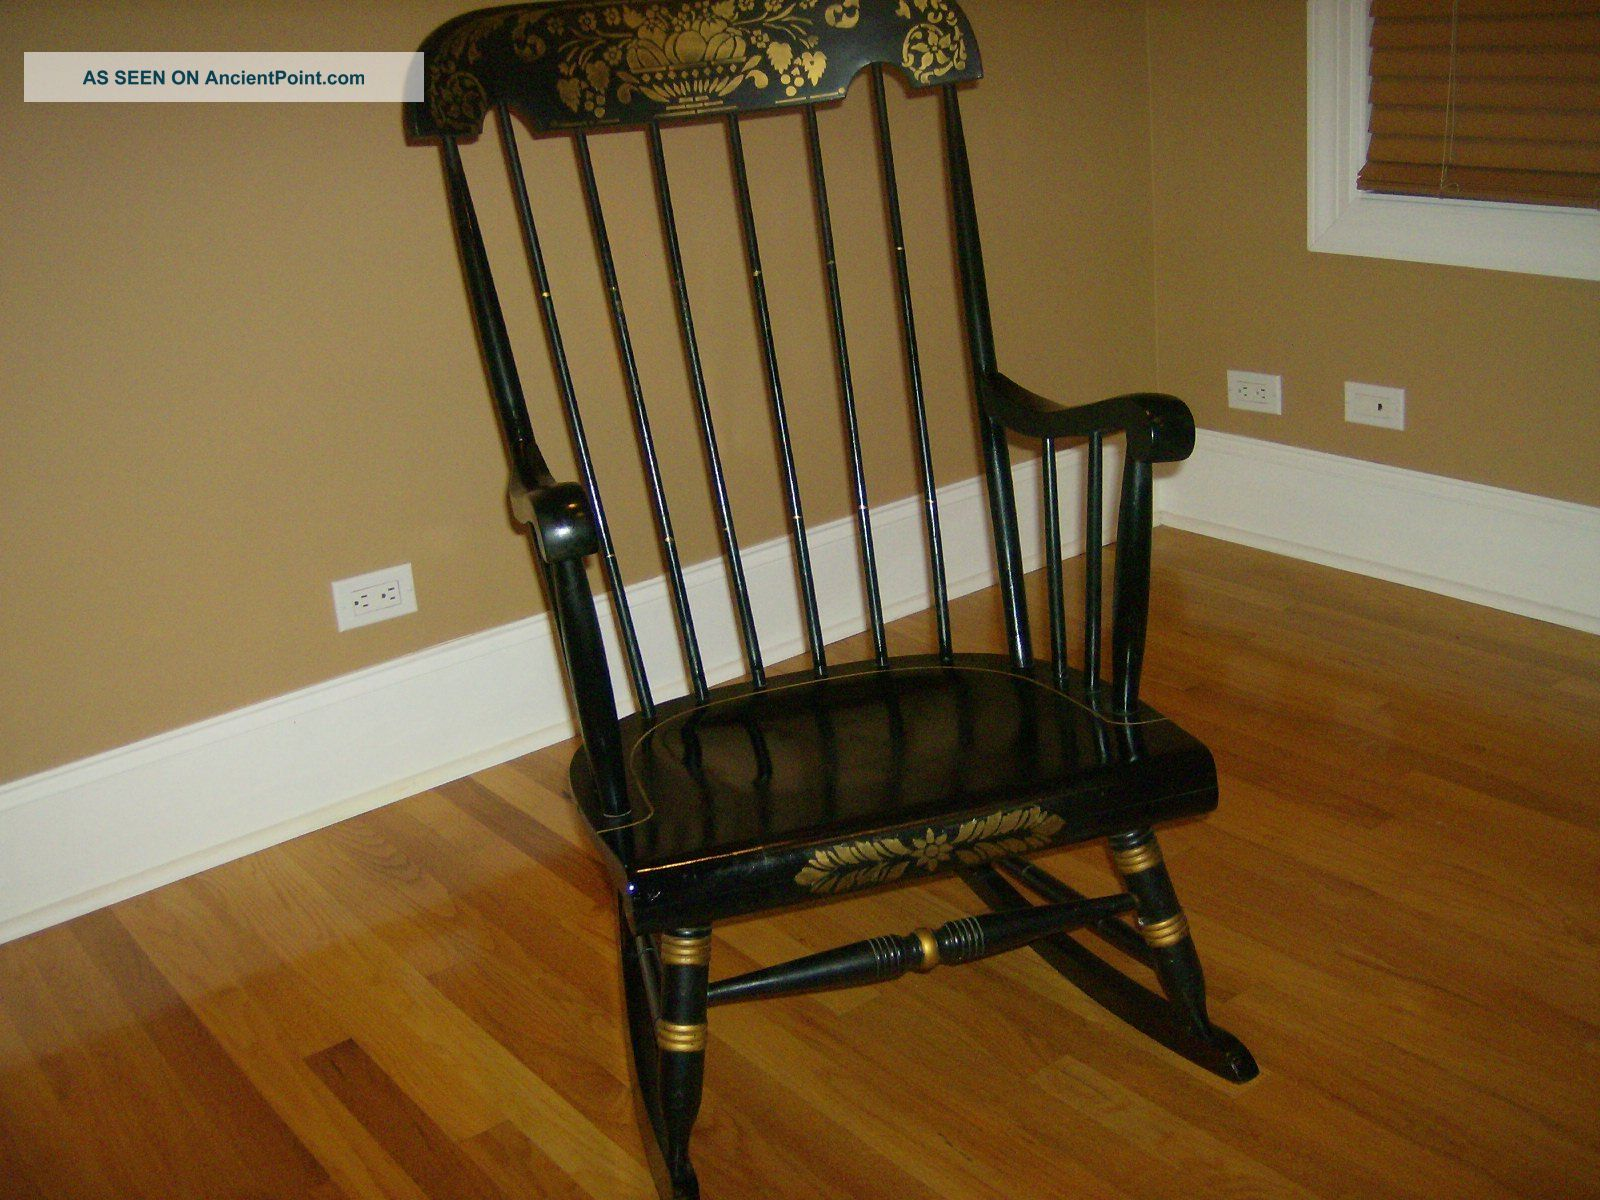 Antique Rocking Chair Antique Vintage Chairs Interior Decorating Accessories